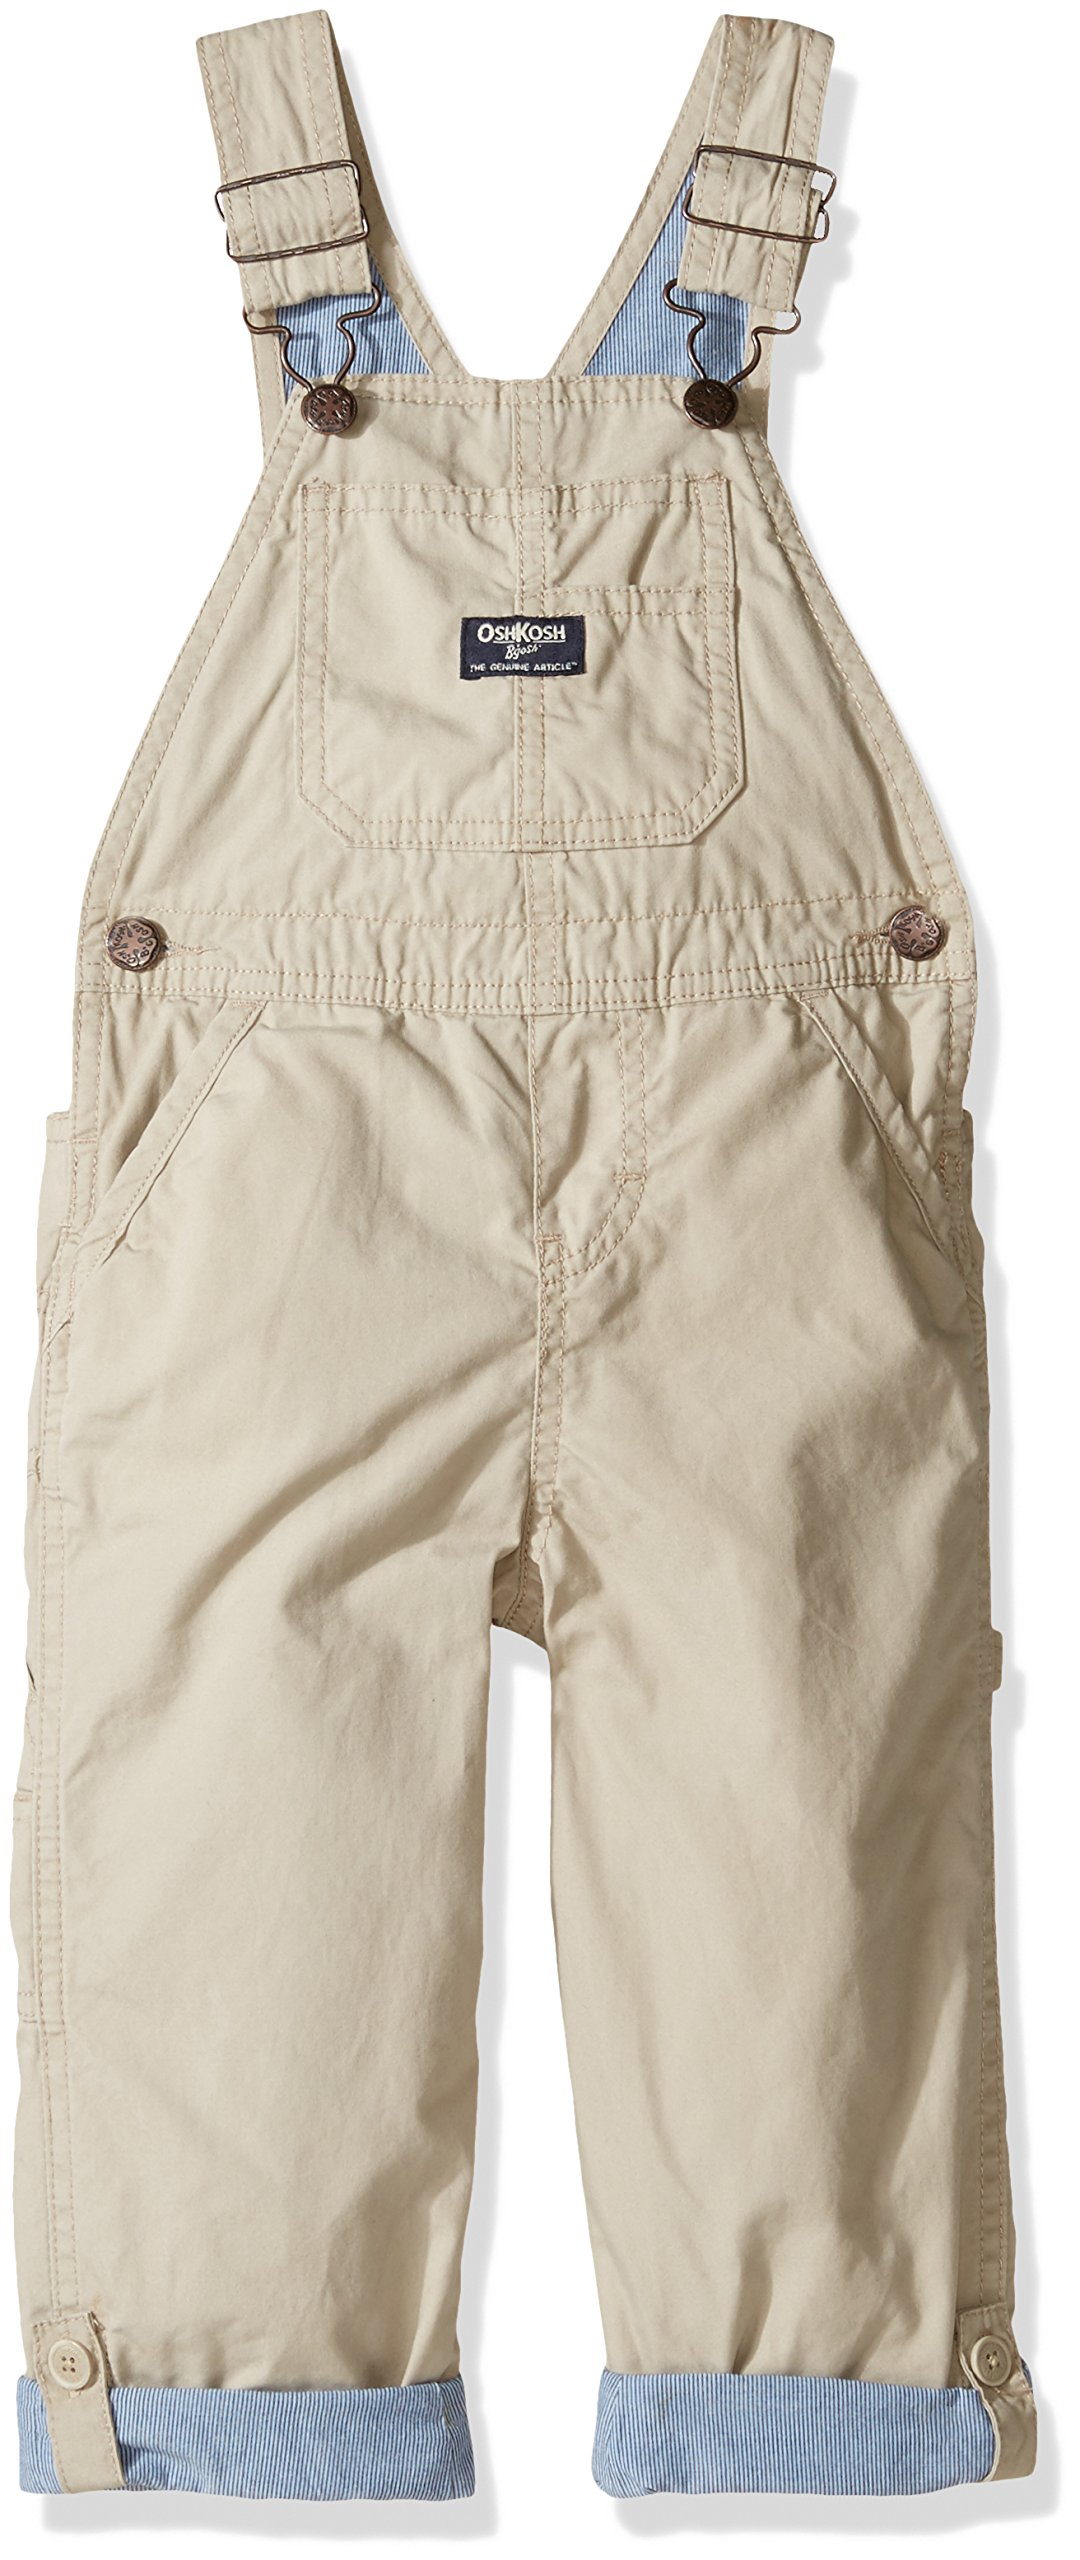 OshKosh B'Gosh Boys' Overall 21830711, Brown, 3T Toddler by OshKosh B'Gosh (Image #1)